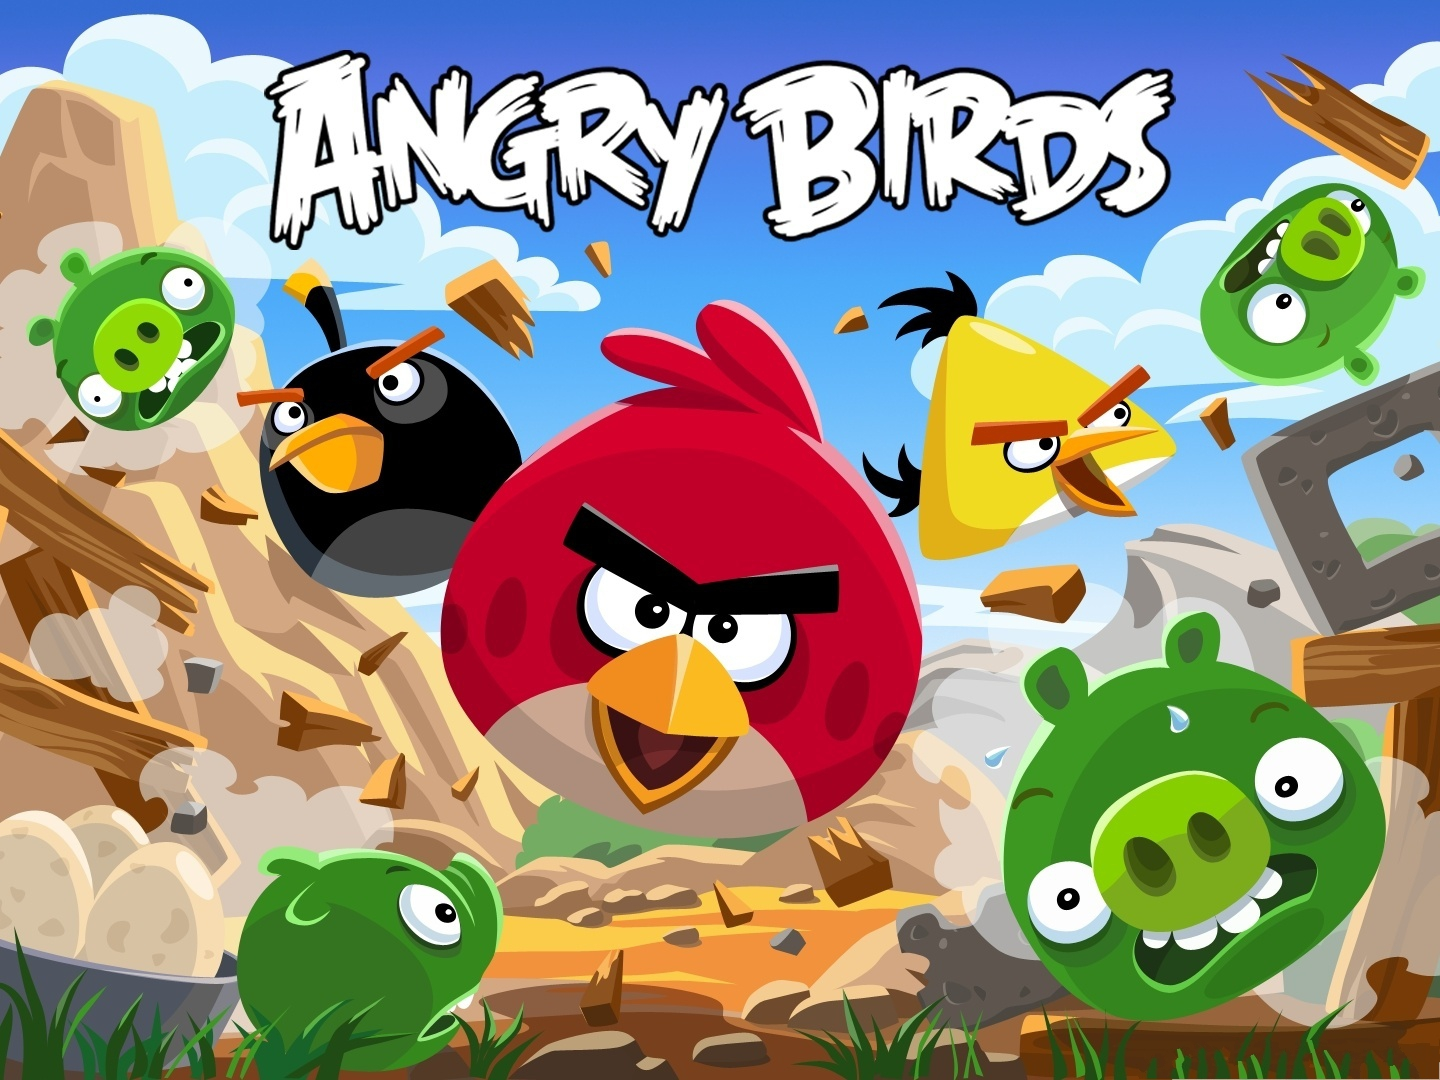 click to free download the wallpaper--Angry Birds Poster, Excited Angry Birds, Scared Pigs in Sweat 1440X1080 free wallpaper download